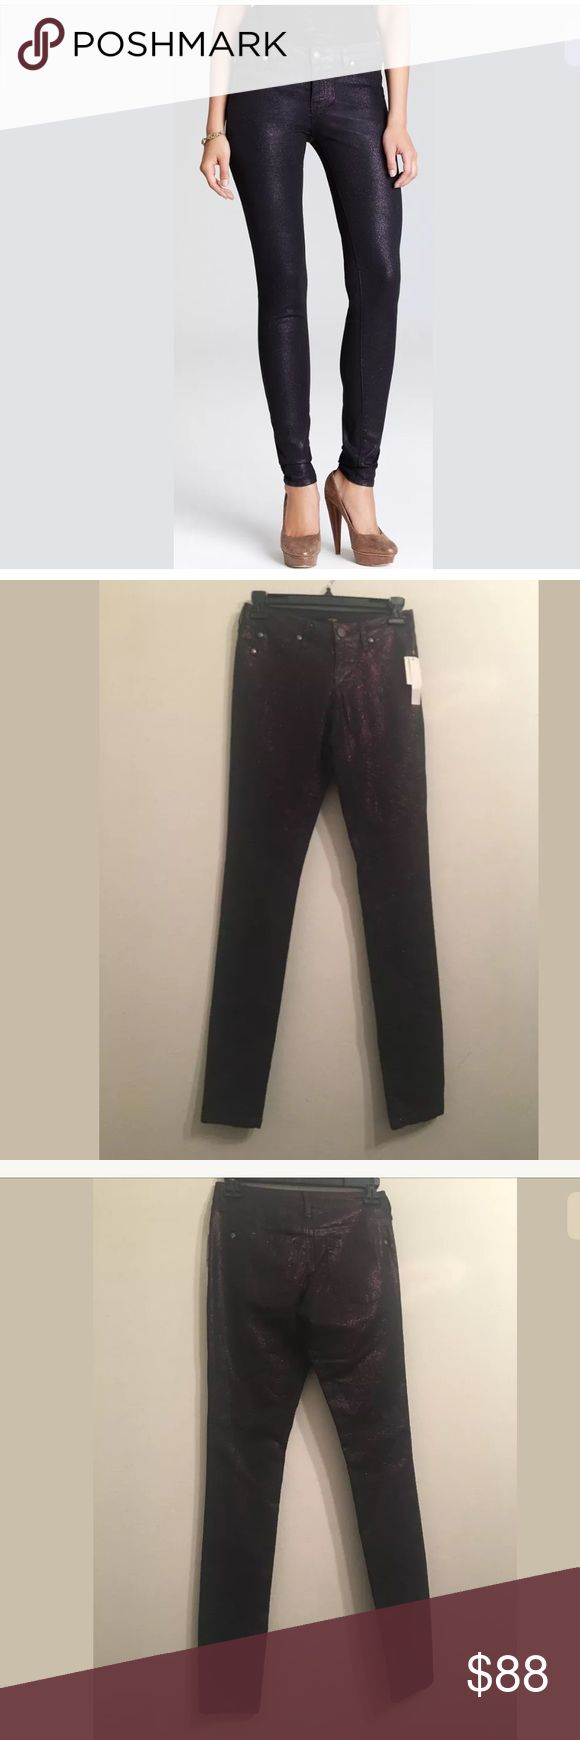 NWT $88 AQUA C17 Black and Purple Skinny Pants 24 NWT $88 AQUA C17 Black and Purple Skinny Pants Size 24  Your satisfaction is our #1 priority. This is why we ship twice daily Monday thru Saturday to get the item to you as quickly as possible!! :). If for any reason you are not100%satisfied please message us and we will work with you to make it right!!    Measurements: Waist: approx. 24 inches Inseam: approx. 31 inches  -Retails Price: $88 + TAX Aqua Pants Skinny